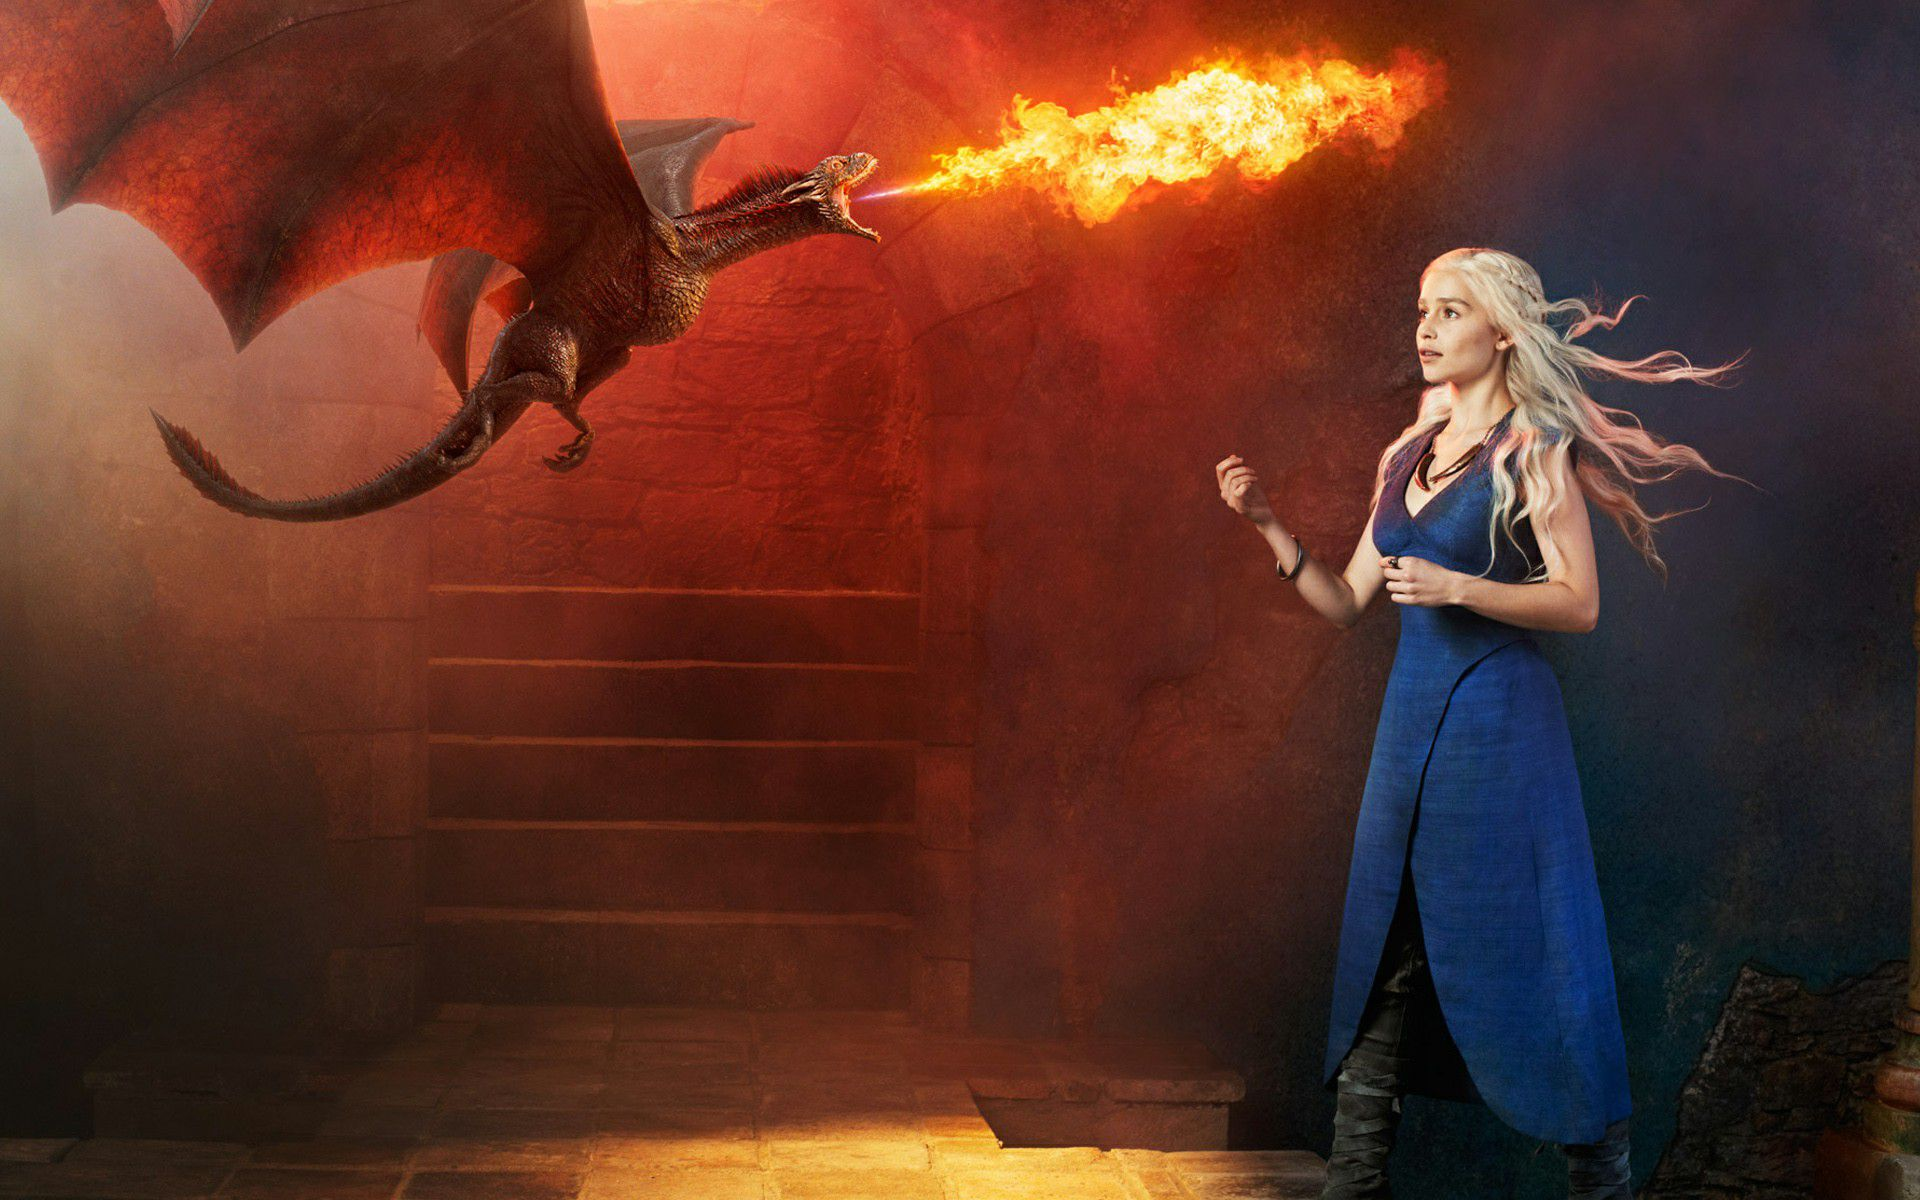 Khaleesi With Dragons Img 522 Game Of Thrones Wallpapers